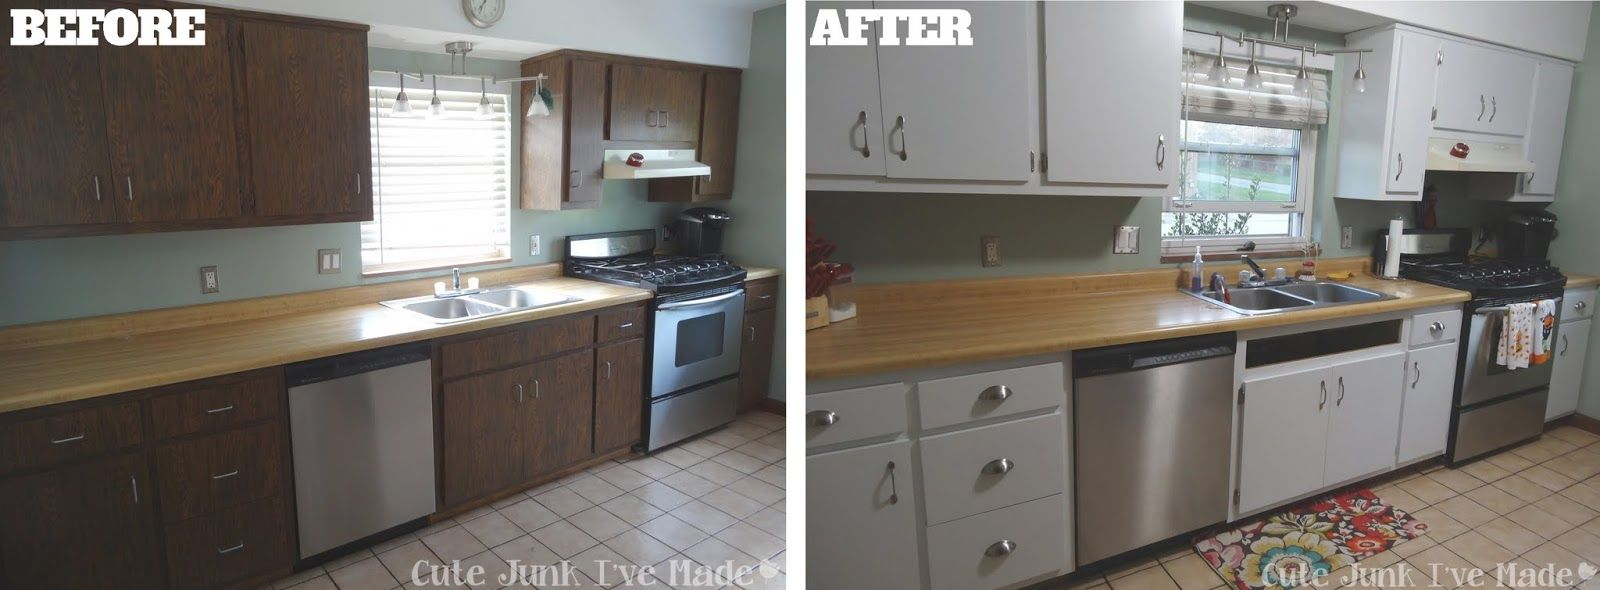 03bdcb025c3a62915b5309e46859ff23 Painting Old Kitchen Cabinets Before And After Ideas on painting ugly cabinets, painting kitchen cabinets dark, painting formica cabinets before and after, painting tiles in kitchen, painting oak cabinets, painting wood cabinets white before and after, painting melamine cabinets before and after, painting paneling, painting kitchen cabinets two colors, painting bathroom tile before and after, painting outdated cabinets, painting old furniture before and after, painting kitchen countertops before and after, painting laminate cabinets before and after, painting kitchen cabinets without sanding, painting your kitchen ideas, painting knotty pine cabinets, painting wood kitchen cabinets, painting old bathroom cabinets, painting kitchen cupboards ideas,